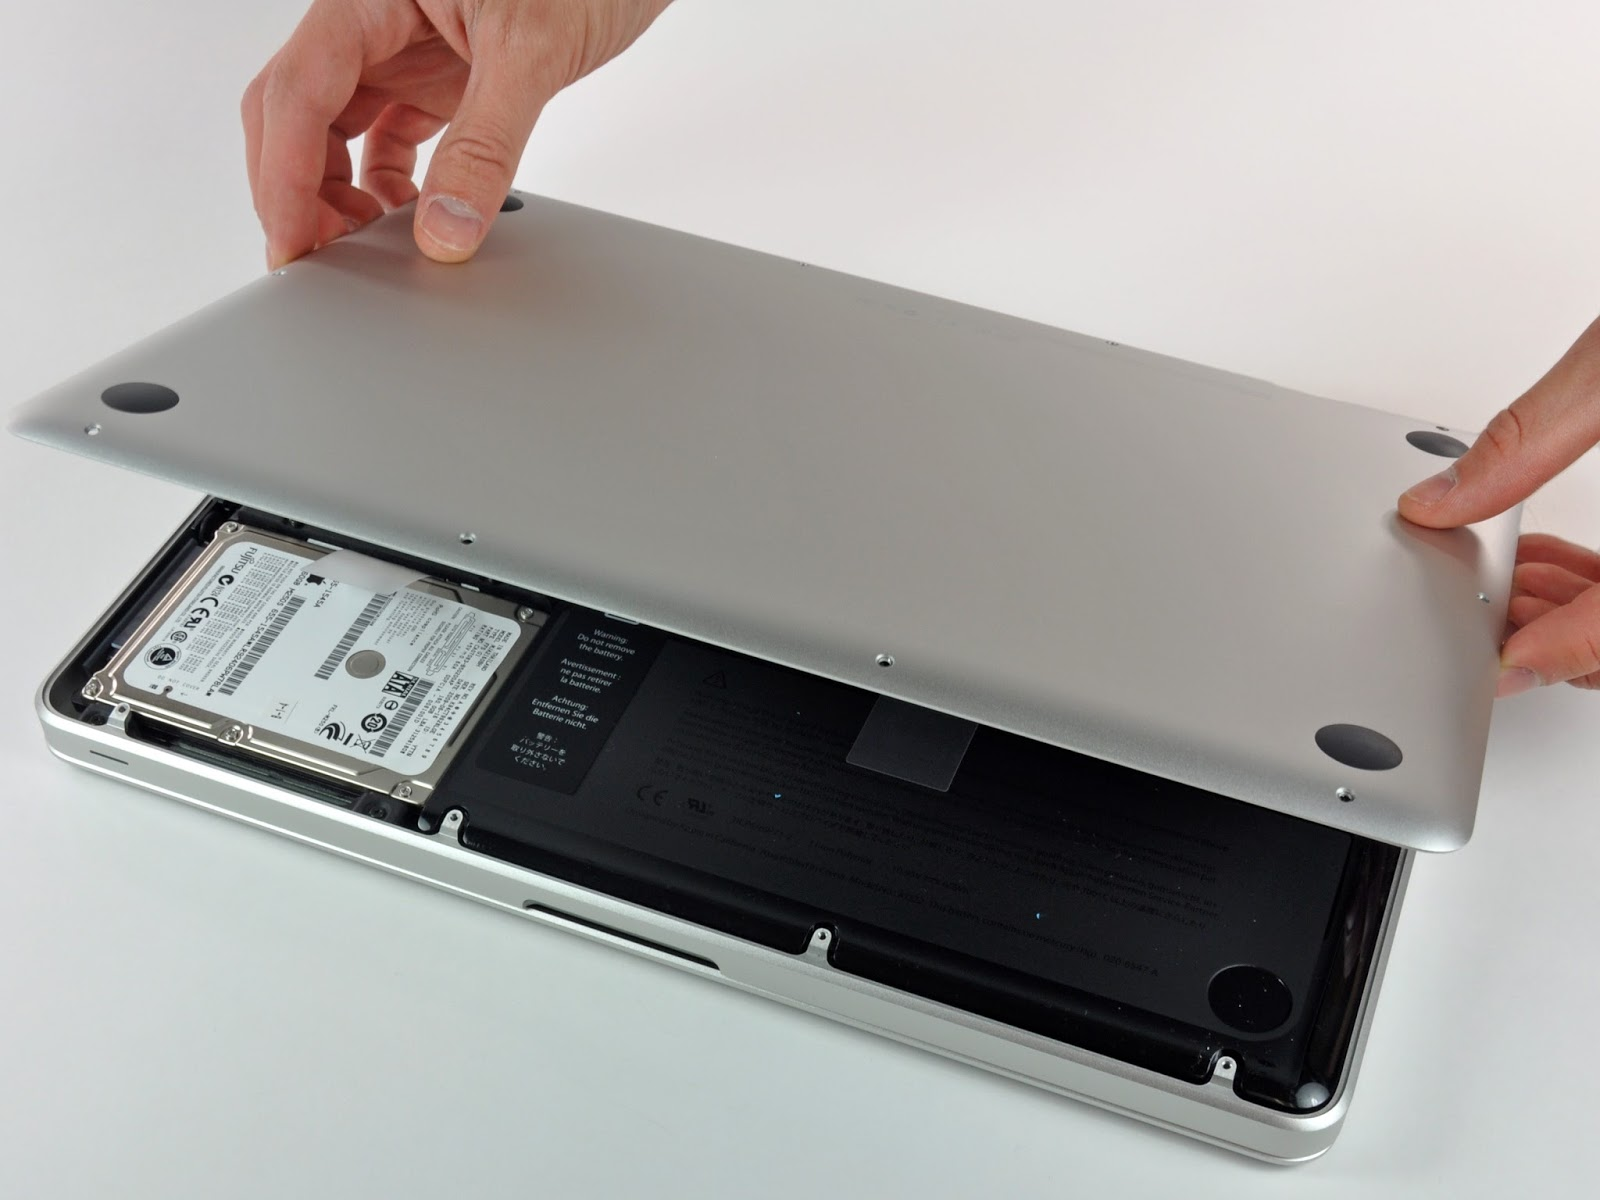 UPGRADE RAM APPLE MACBOOK PRO | KEDAI REPAIR MACBOOK 3